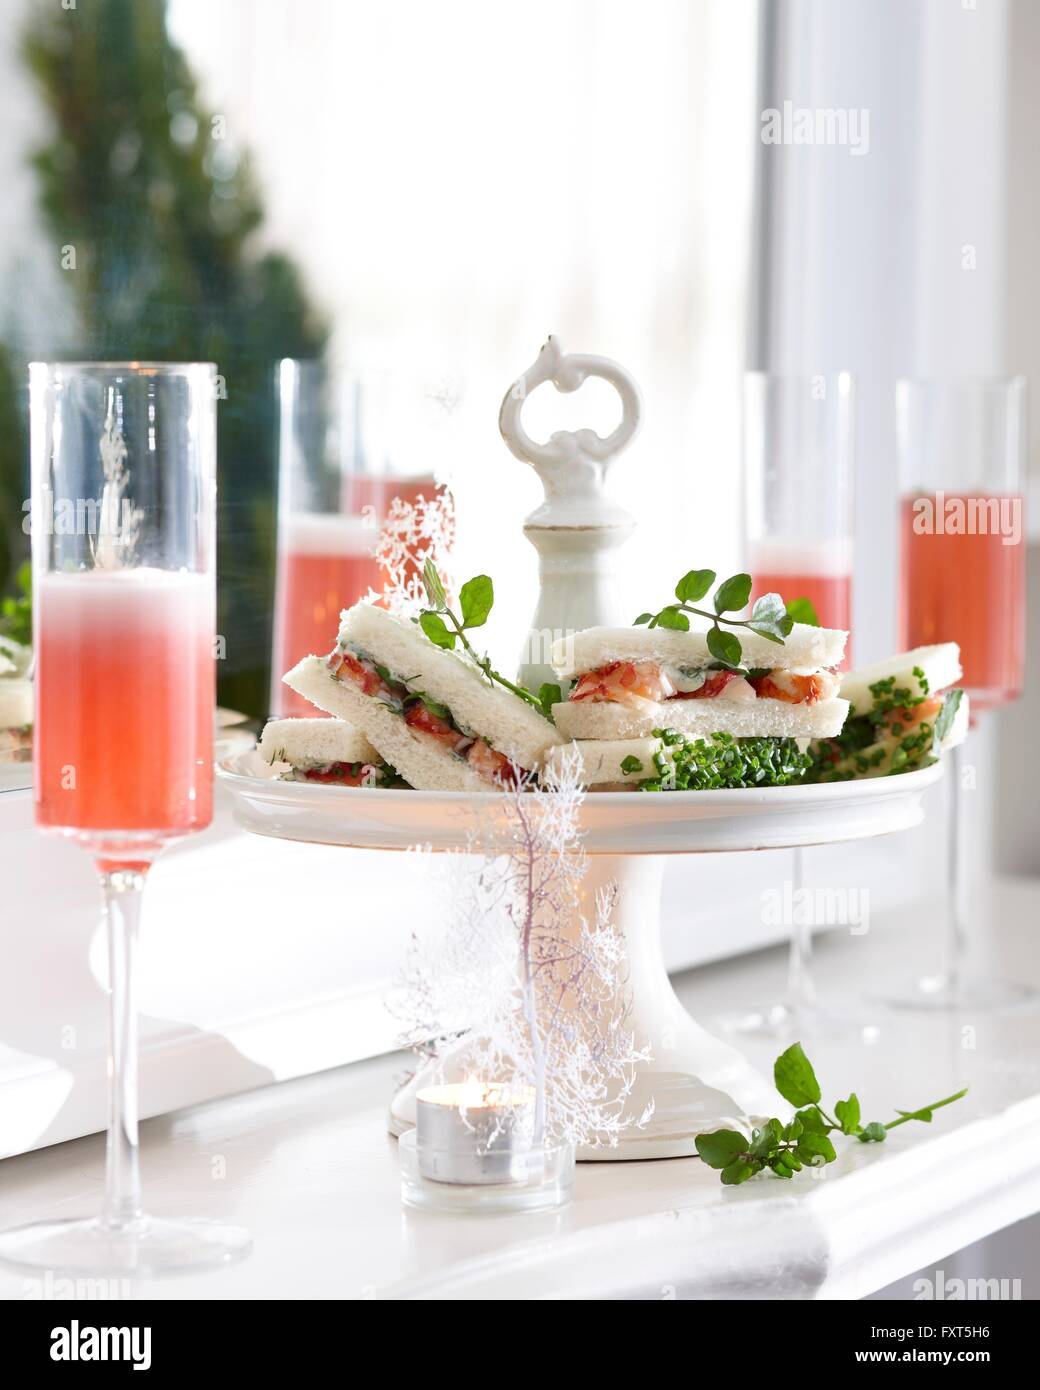 Champagne flutes of pink champagne and crayfish sandwiches on cake stand - Stock Image